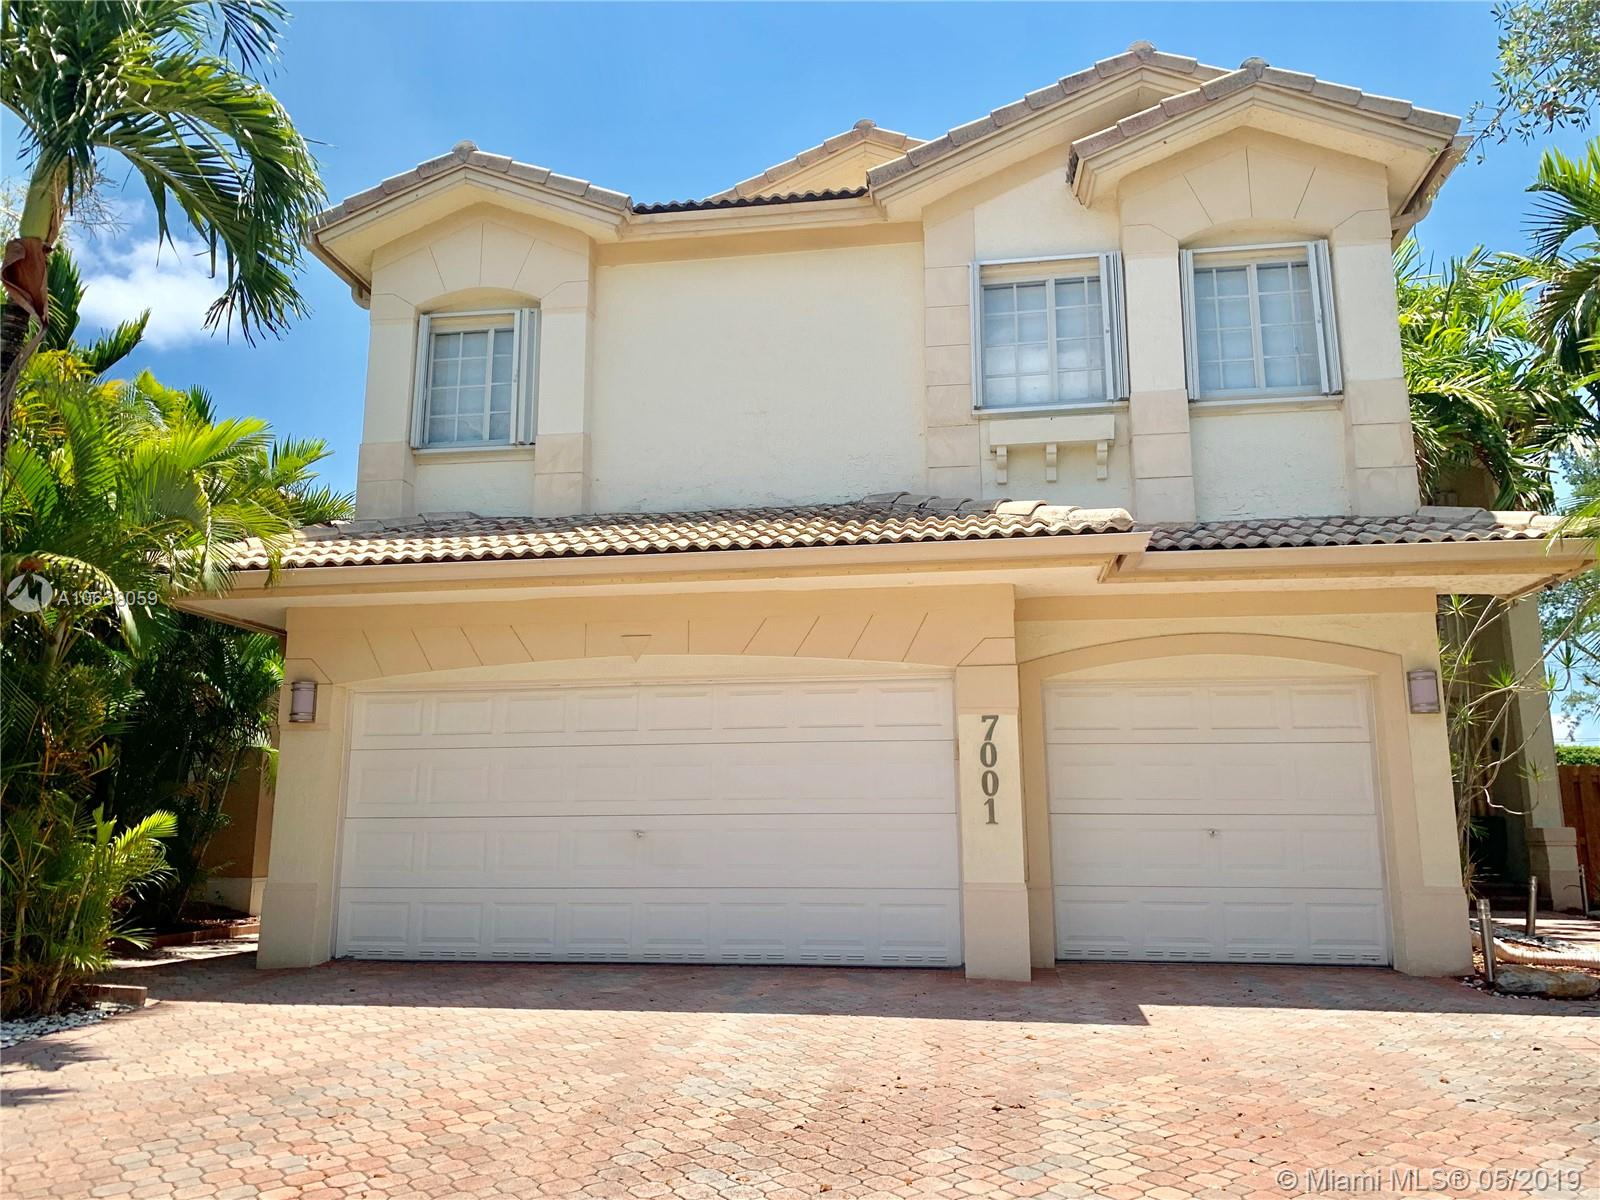 One of Doral 5 Bedroom Homes for Sale at 7001 NW 107th Ct